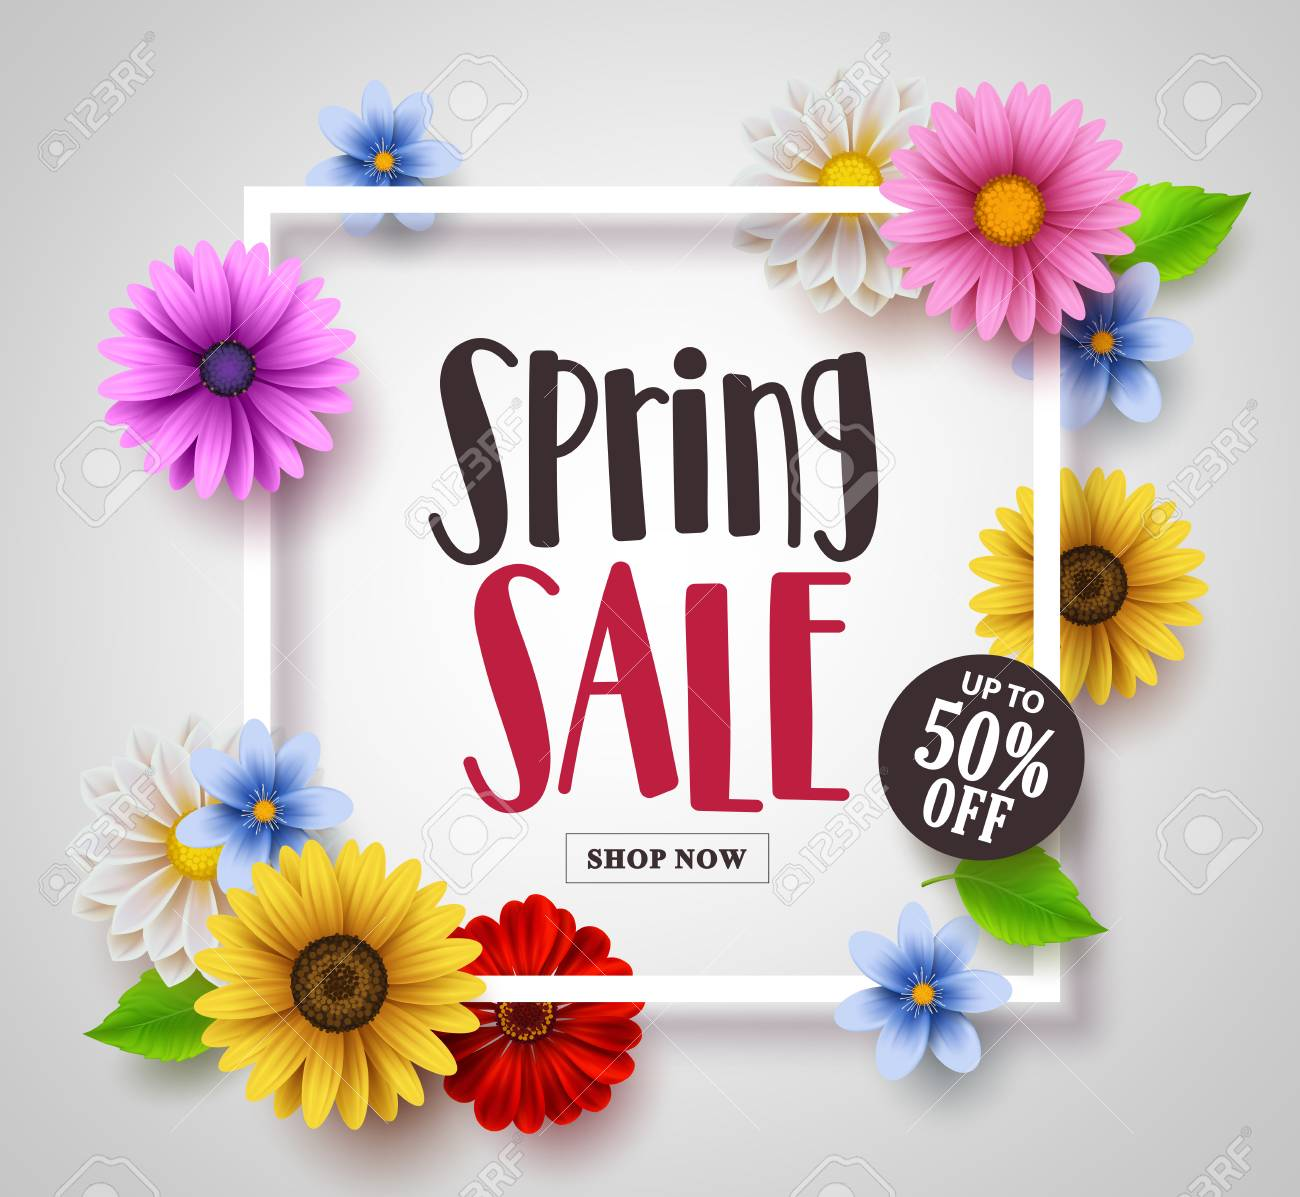 Spring sale vector banner design with colorful daisy sunflower spring sale vector banner design with colorful daisy sunflower and floral elements and a frame izmirmasajfo Images